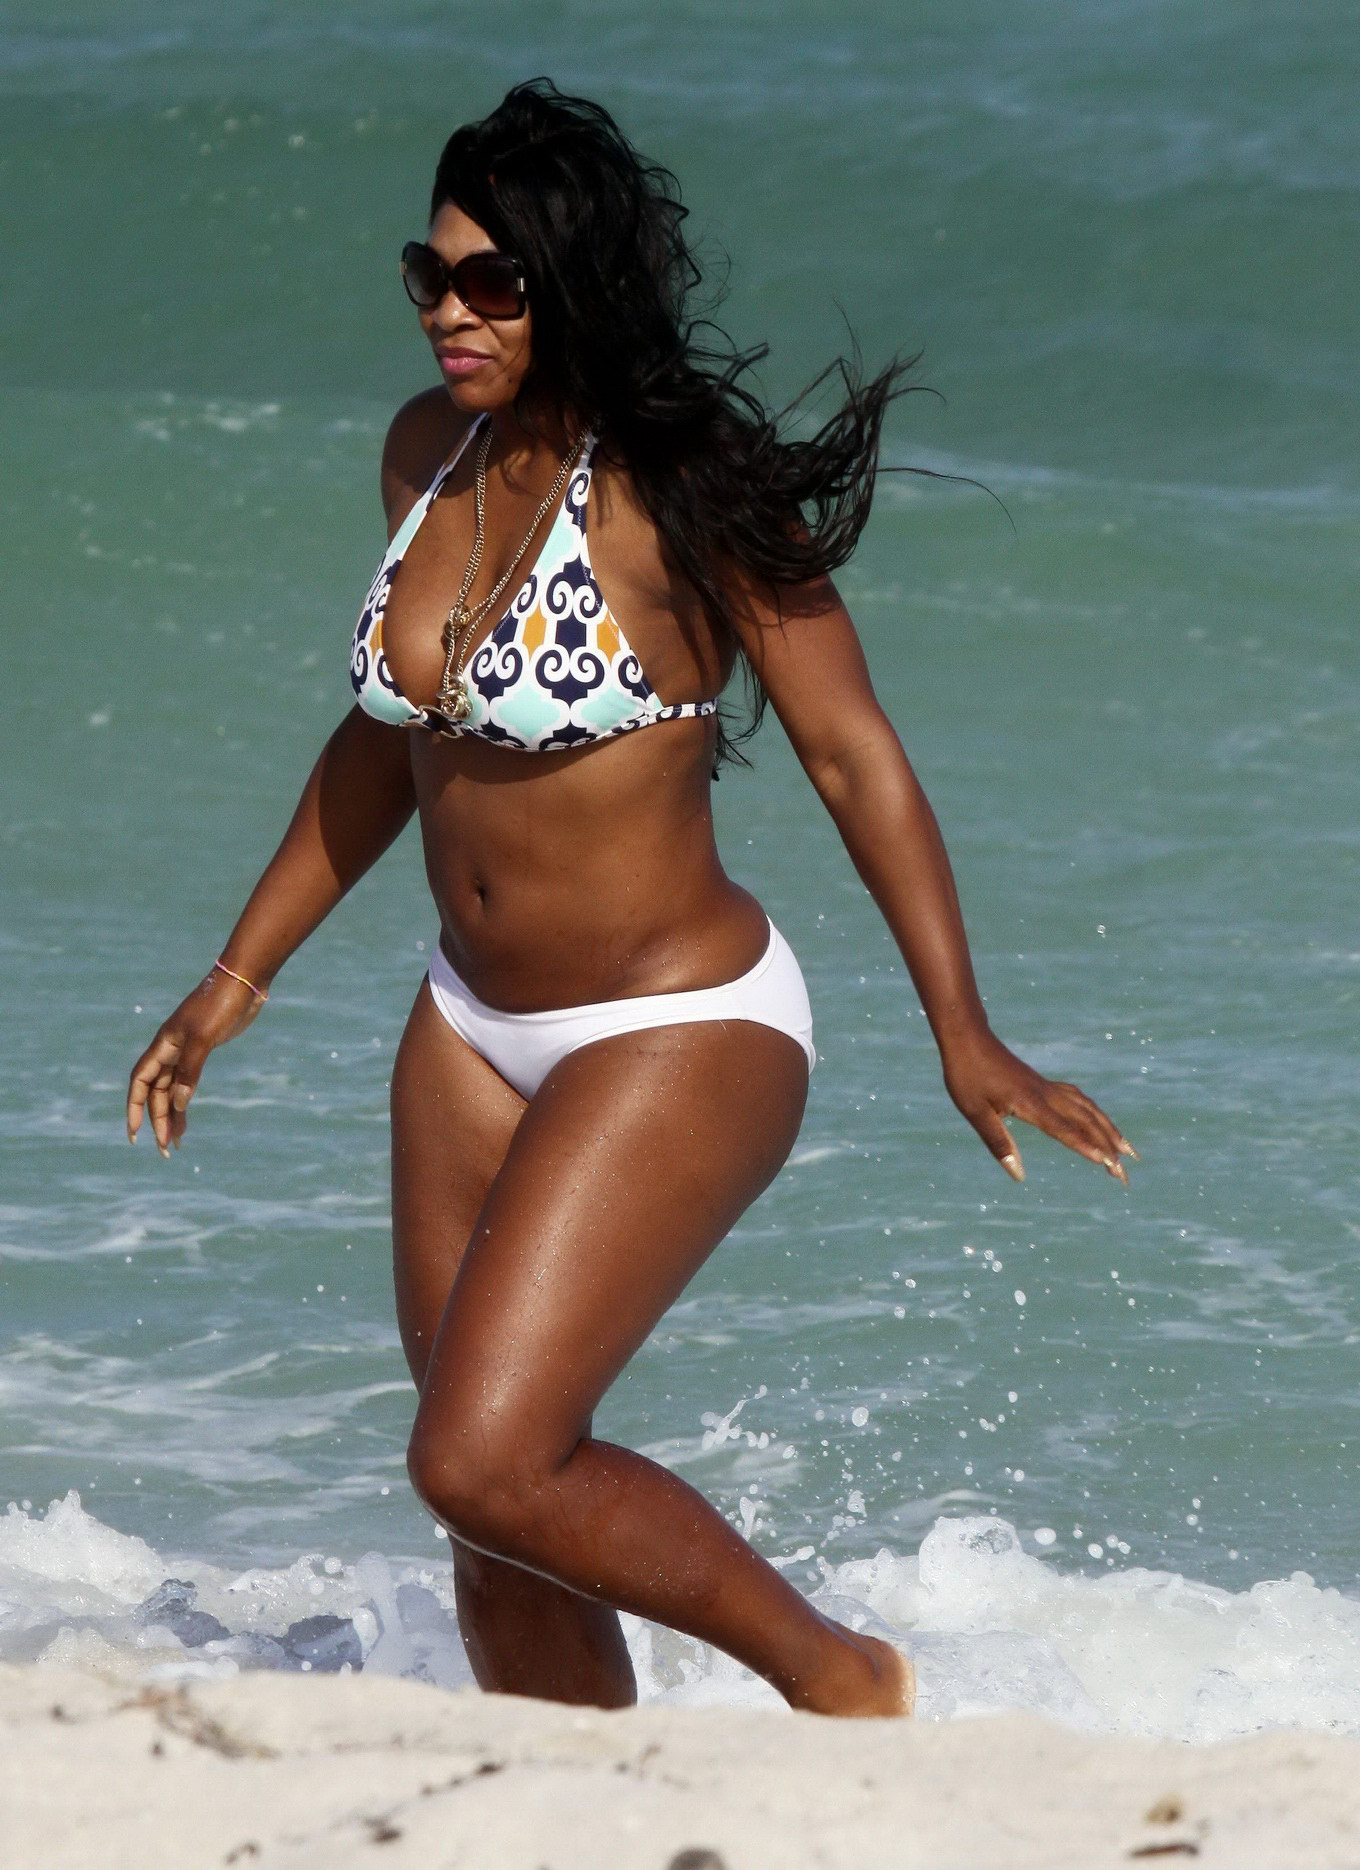 Pity, that serena williams femdom